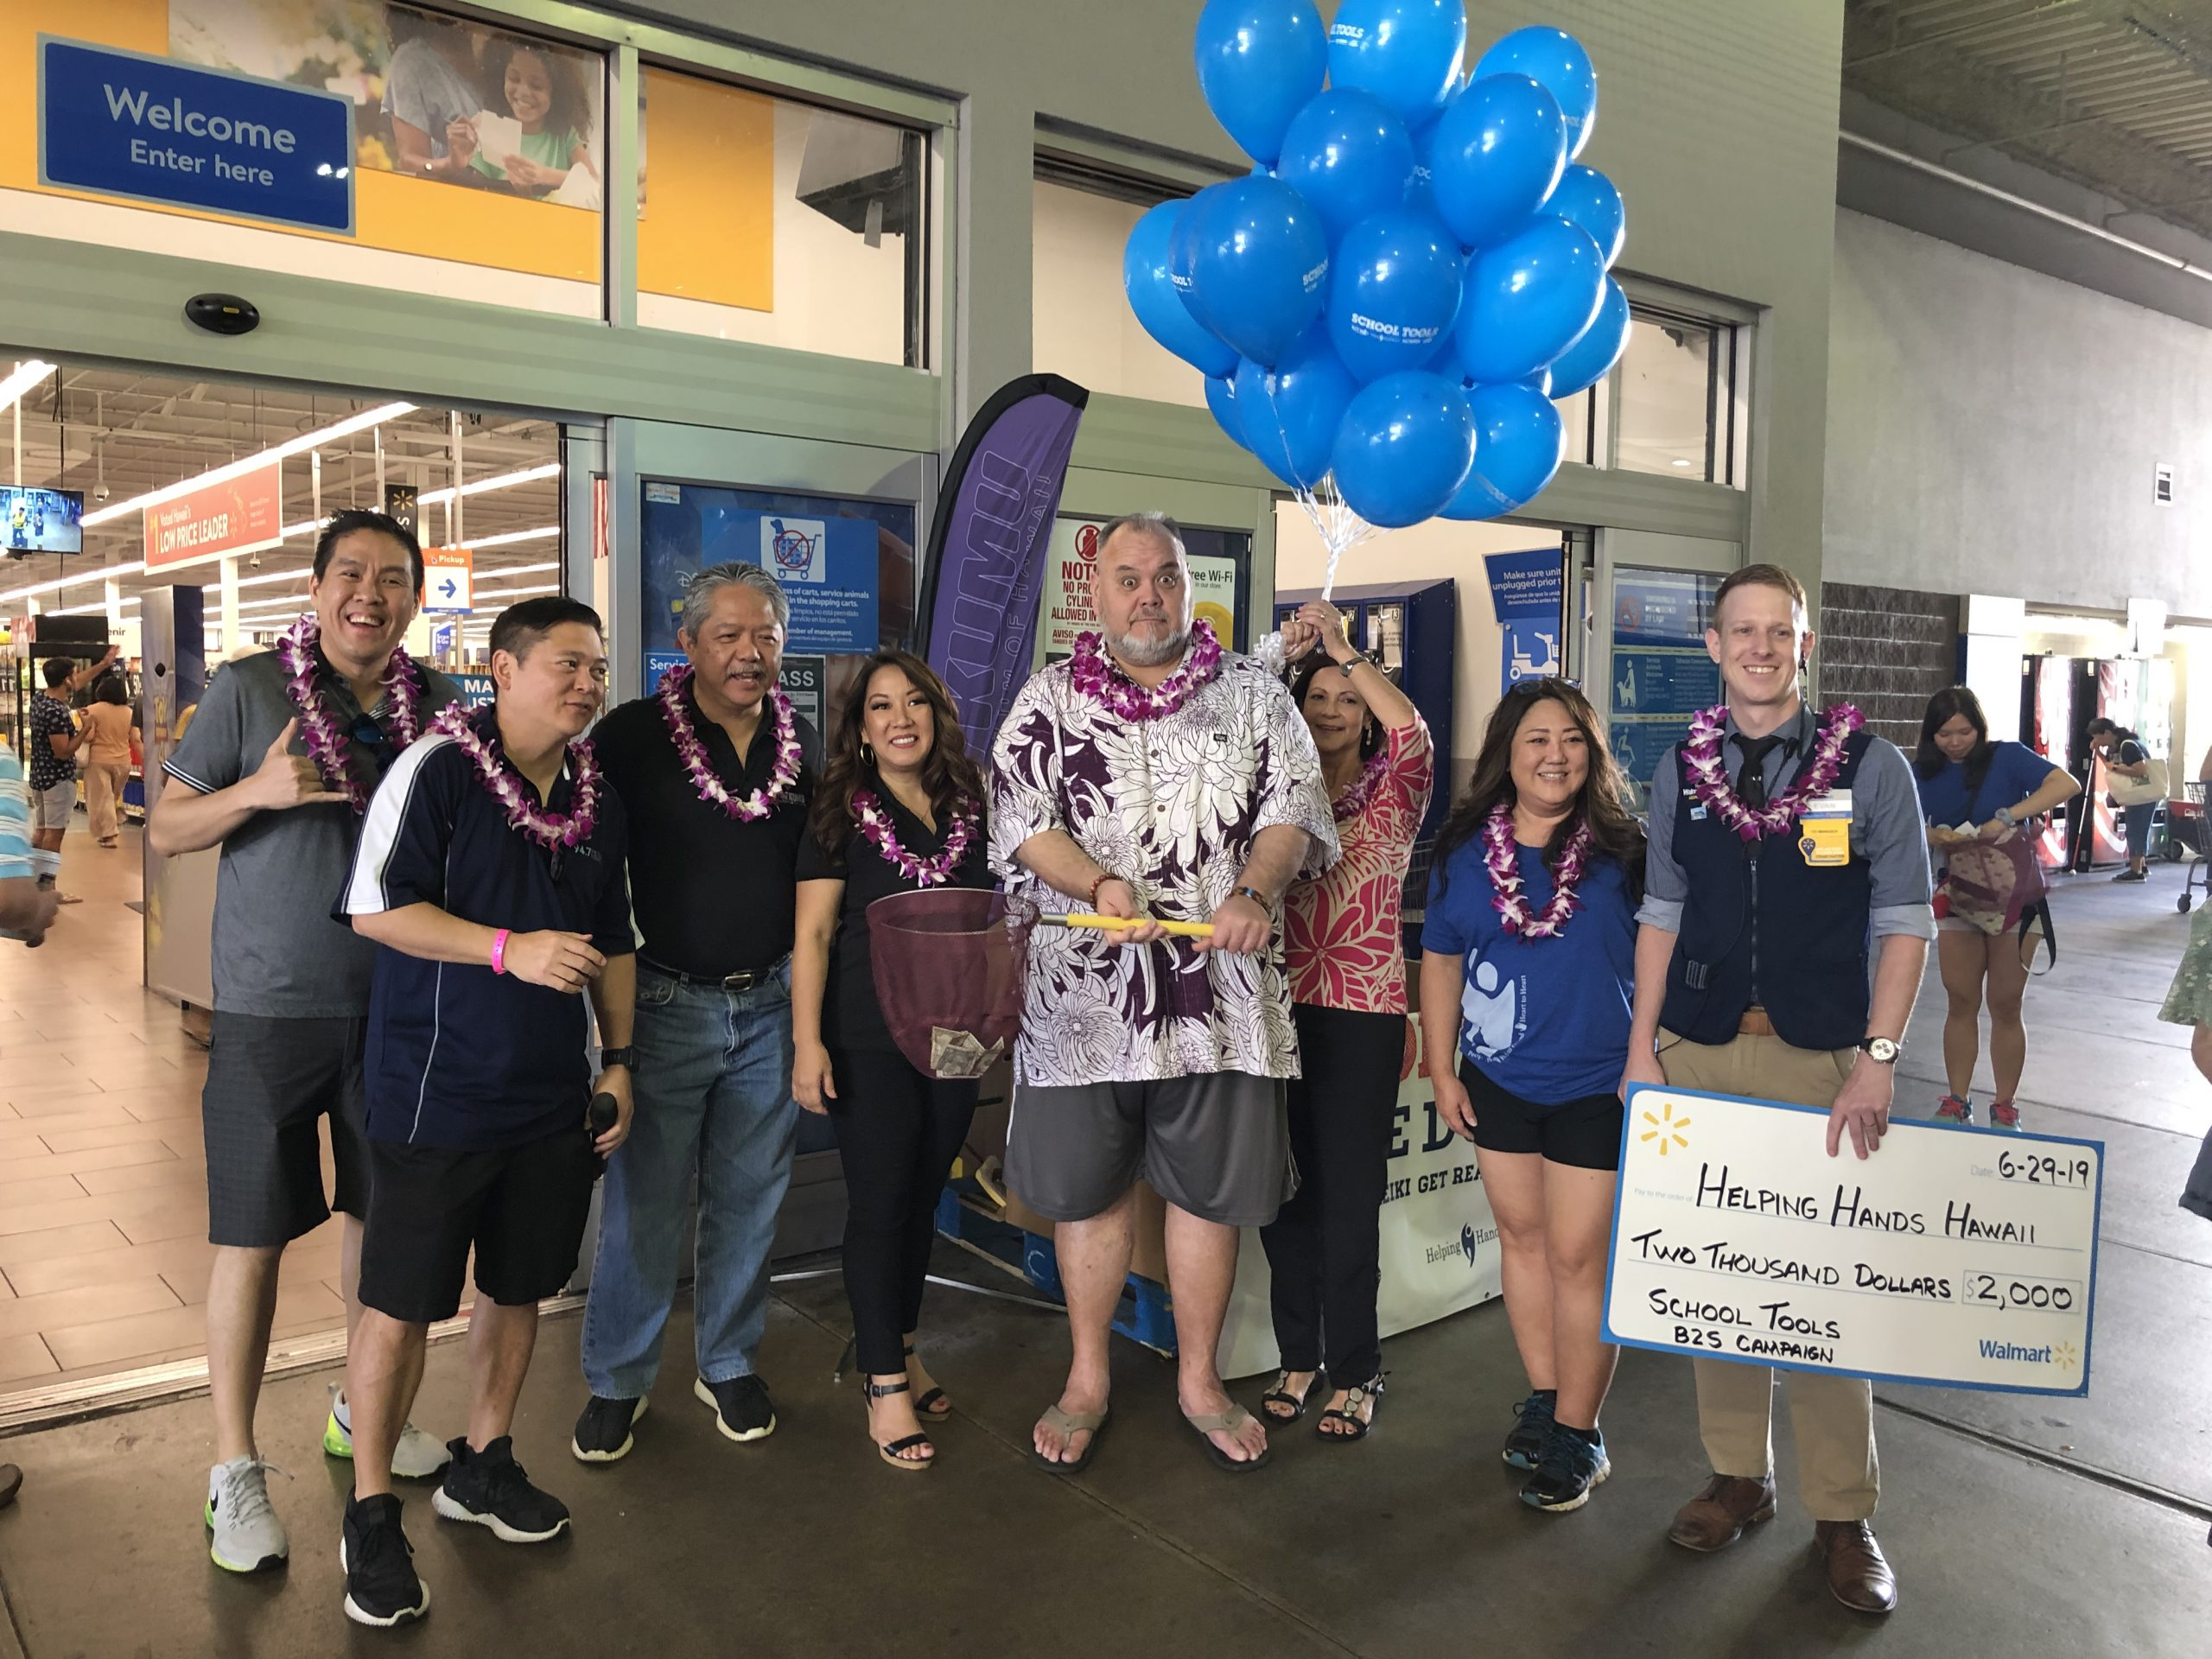 People pose in front of a store entrance during a donation drive for Helping Hands Hawaii.